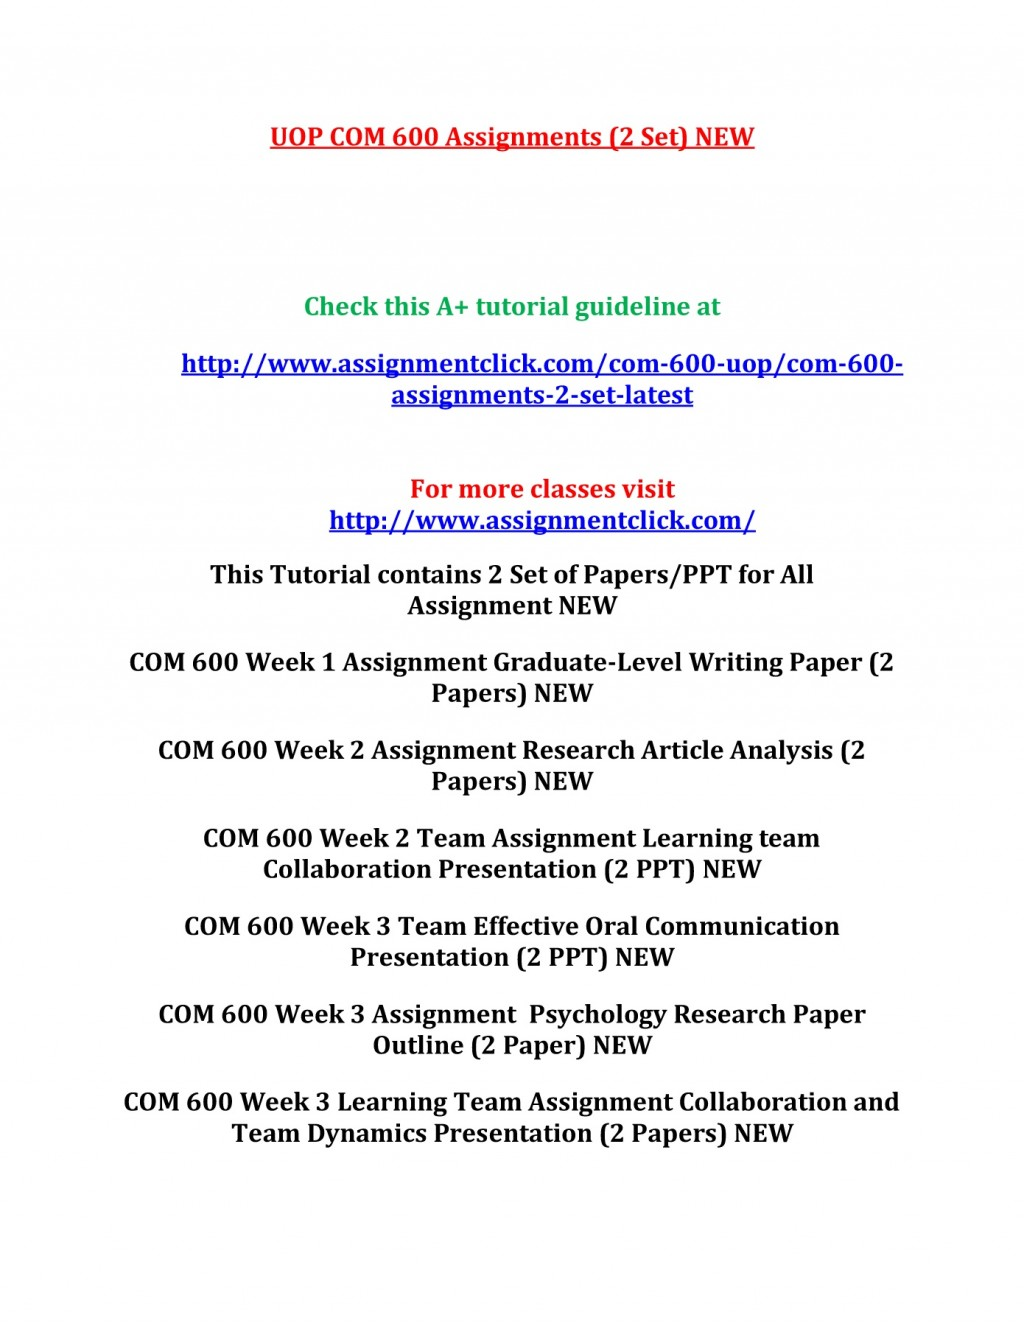 006 Research Paper Psychology Outline Com Striking 600 Com/600 Large